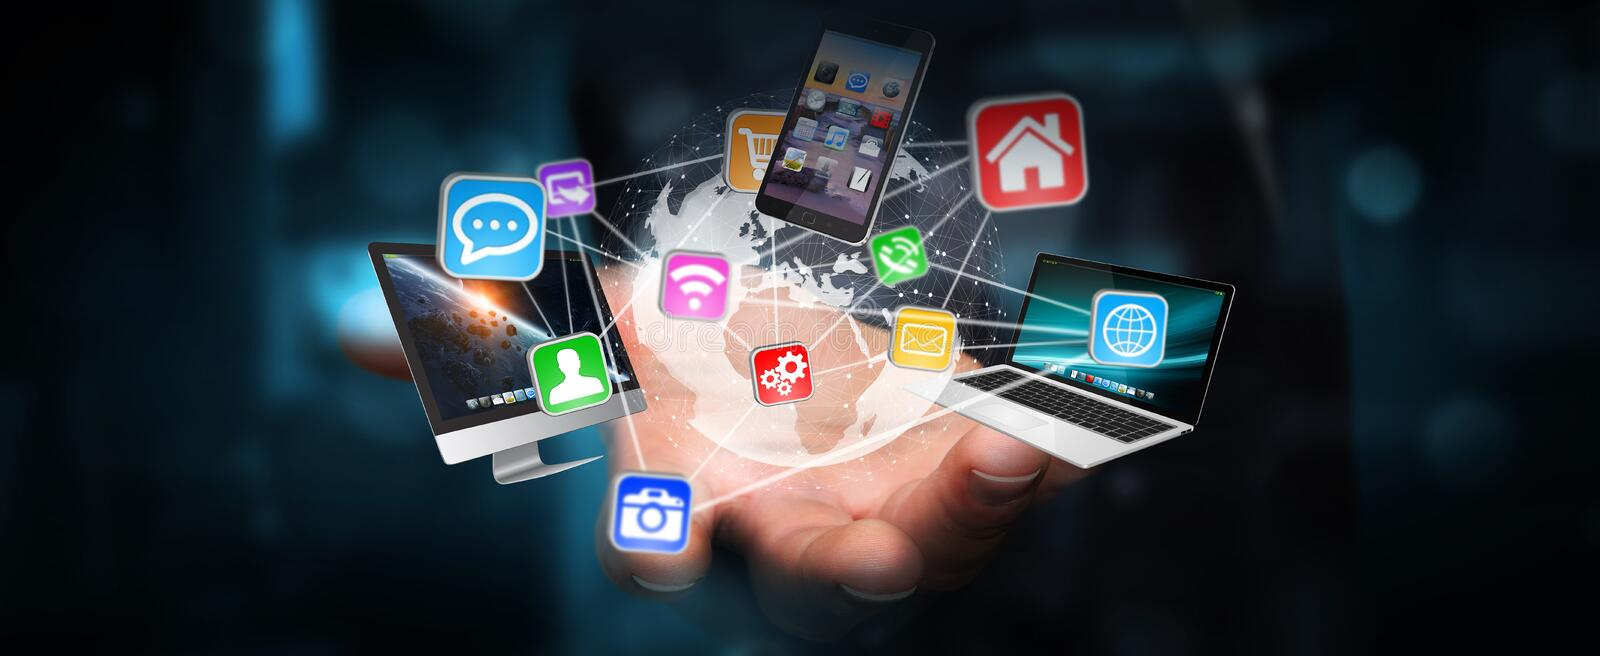 Tech devices and icons connected to digital planet earth stock illustration